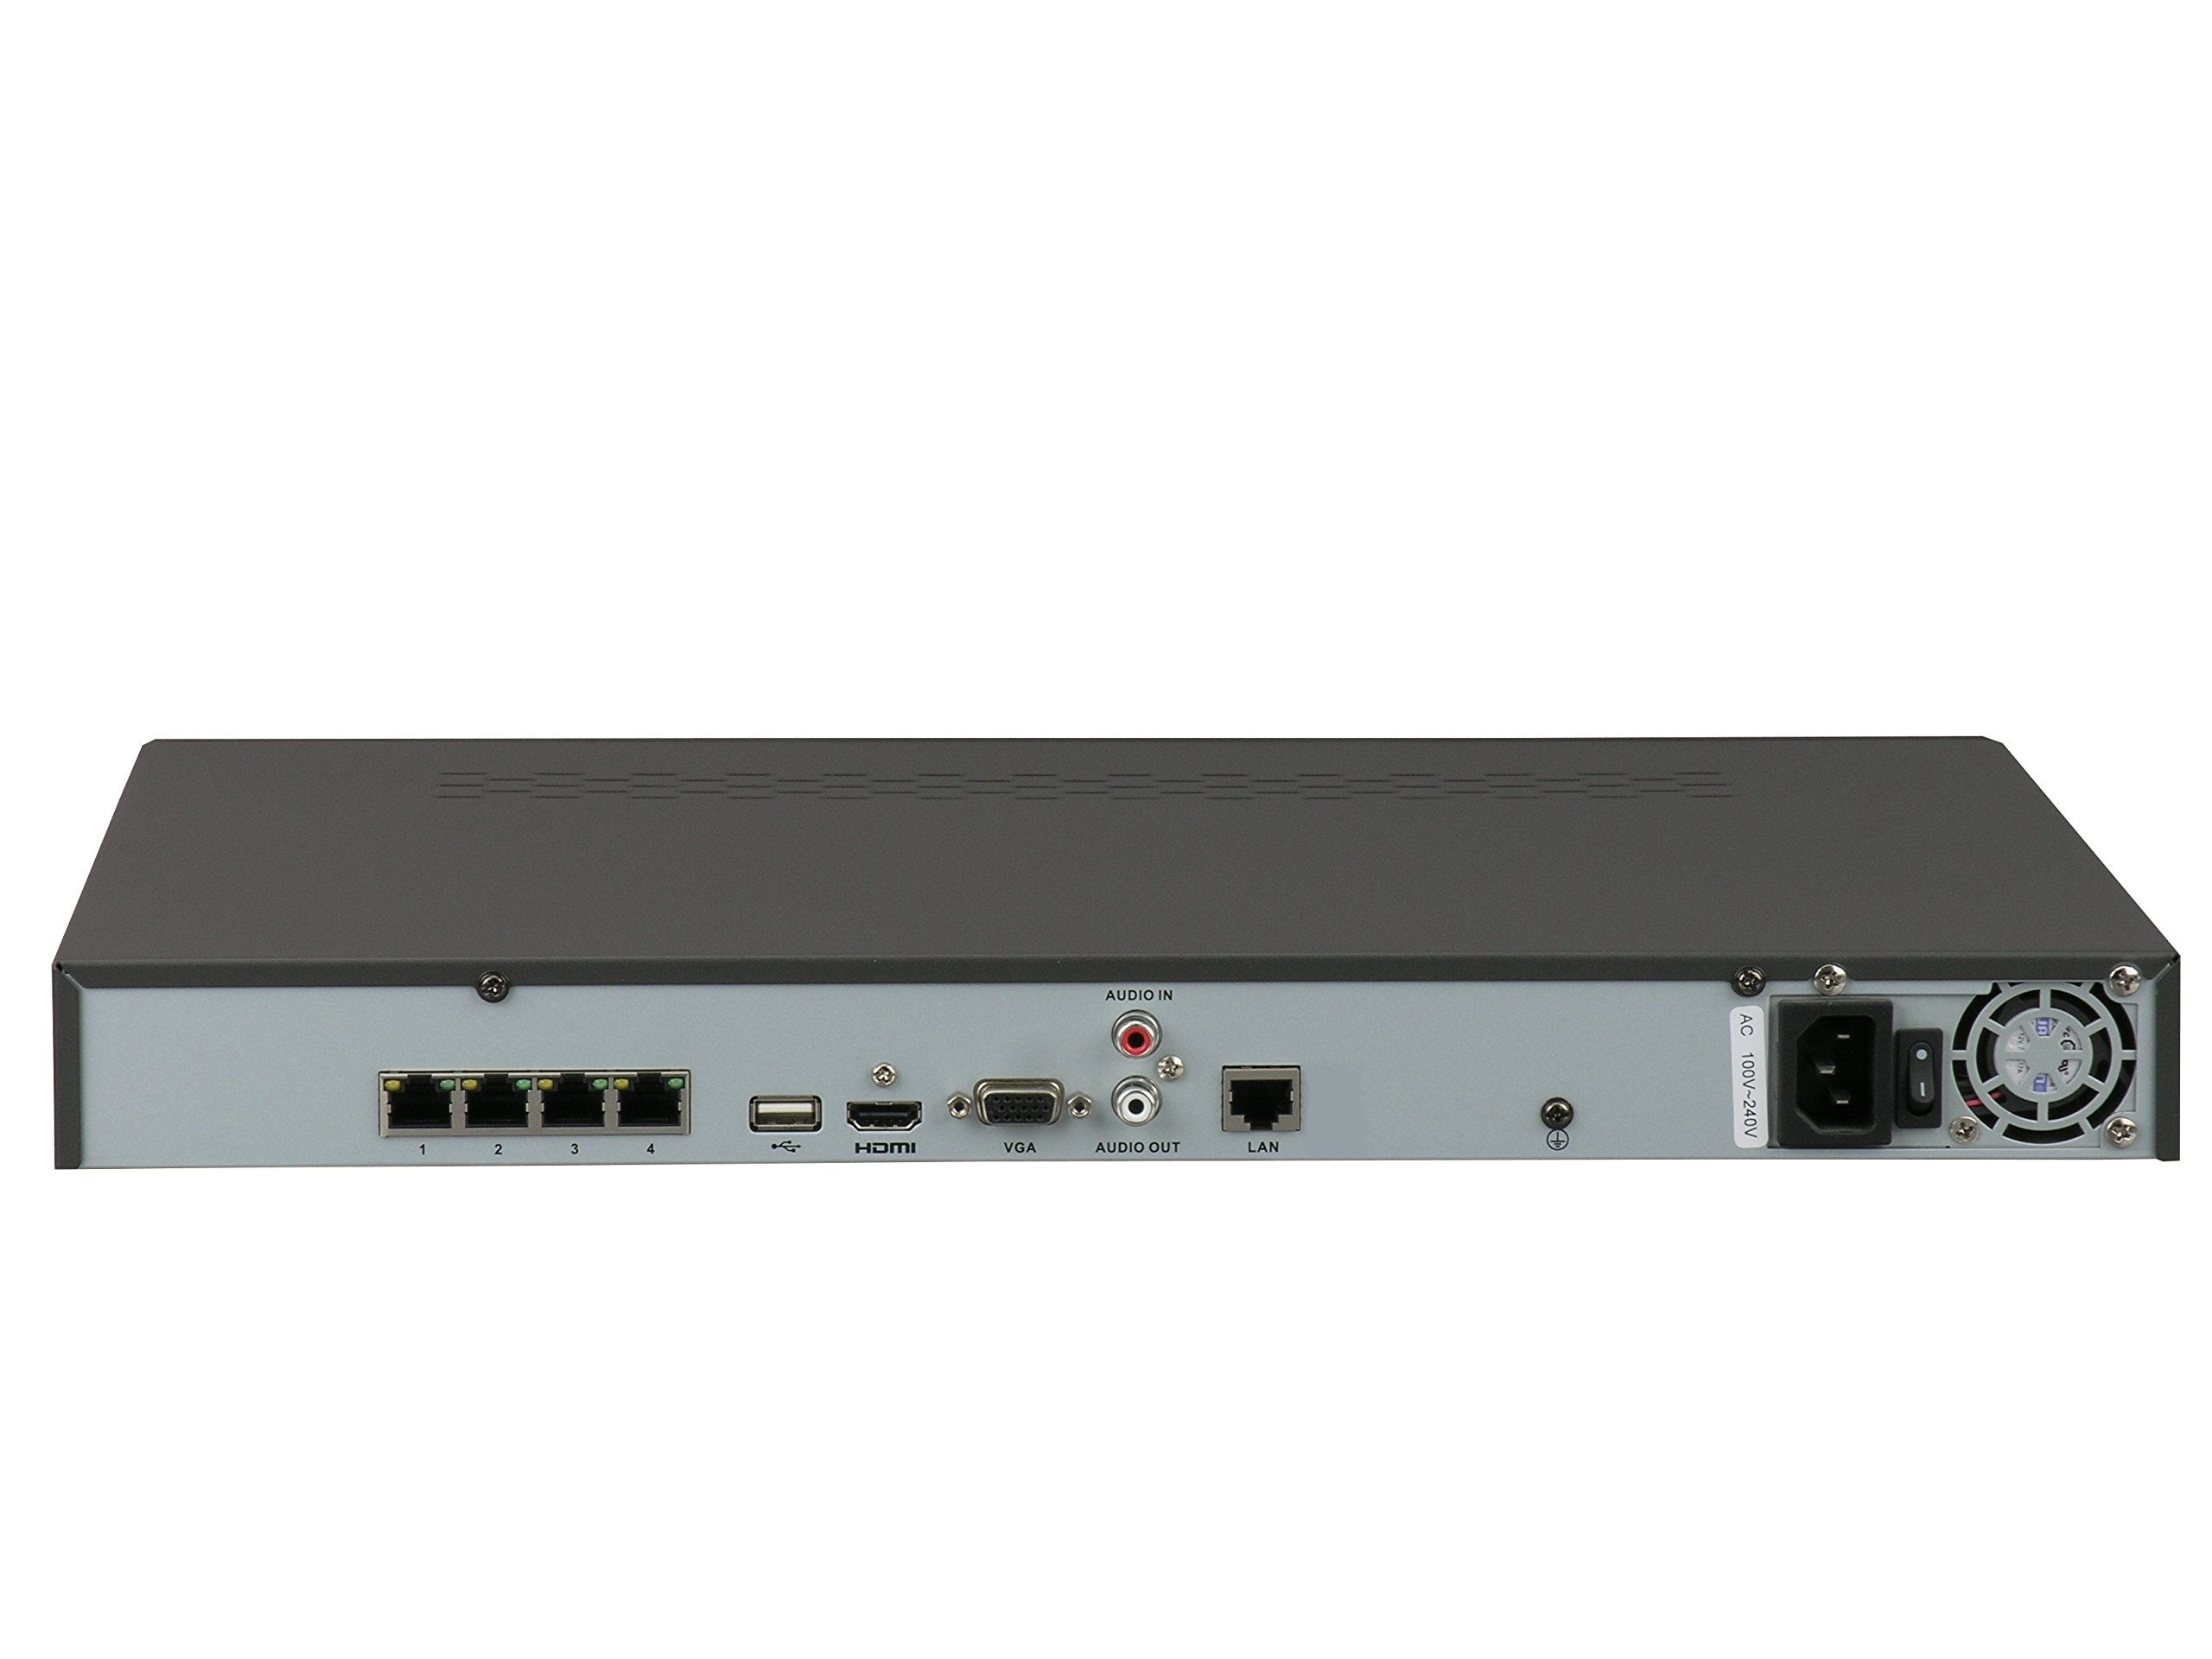 HIKVISION DS-7604NI-E1/4P 4CH PoE NVR Network Video Recorder with up to 5MP Resolution Recording Includes a 1TB Hard Drive by Hikvision (Image #2)